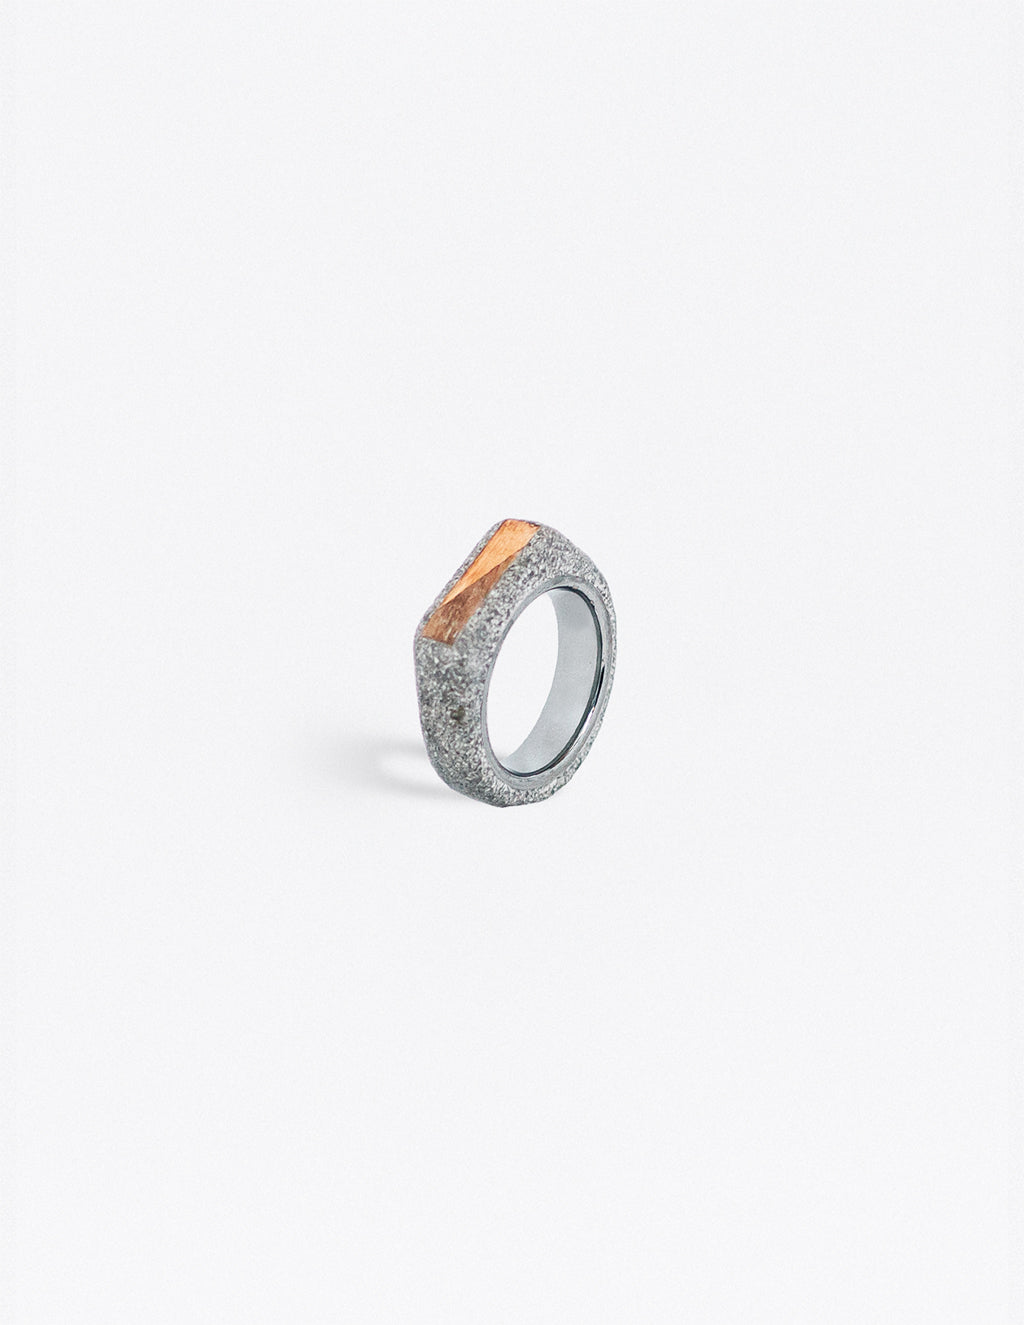 Yomo Studio grey 6mm triangles ring. Materials include: concrete, tungsten ring, walnut and pine wood.